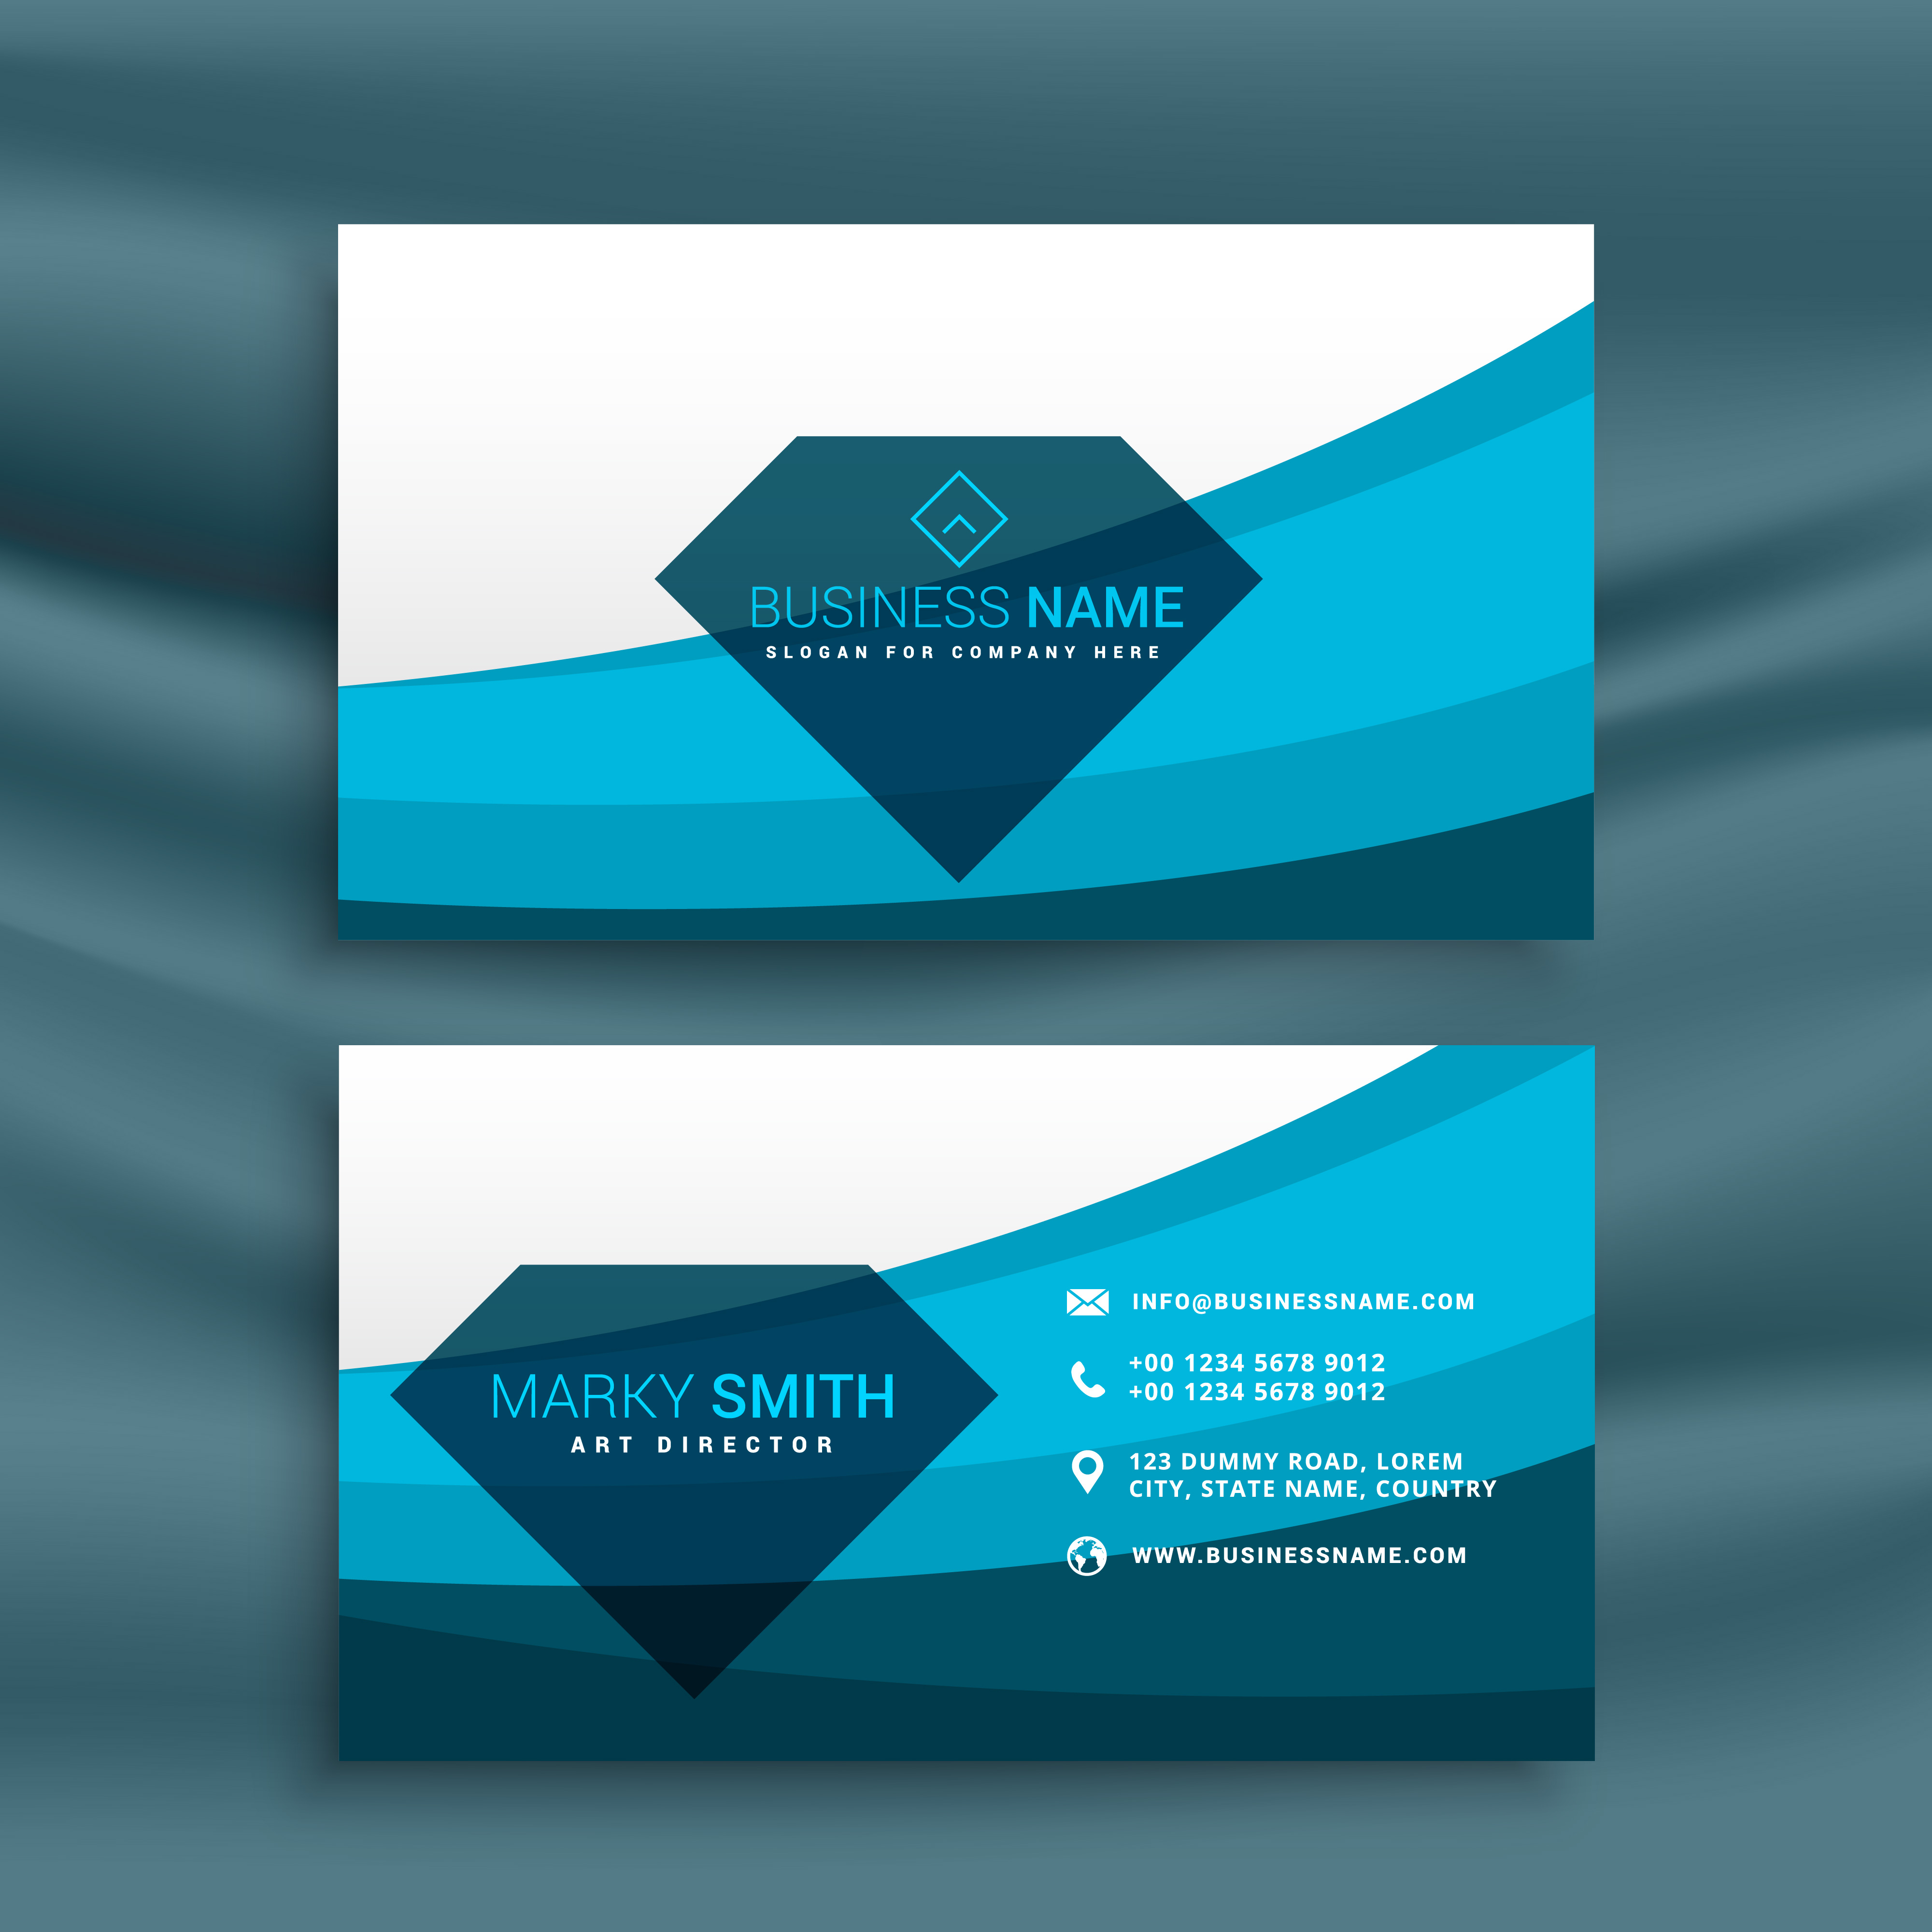 Blue wave business card template design with diamond shape blue wave business card template design with diamond shape download free vector art stock graphics images alramifo Images